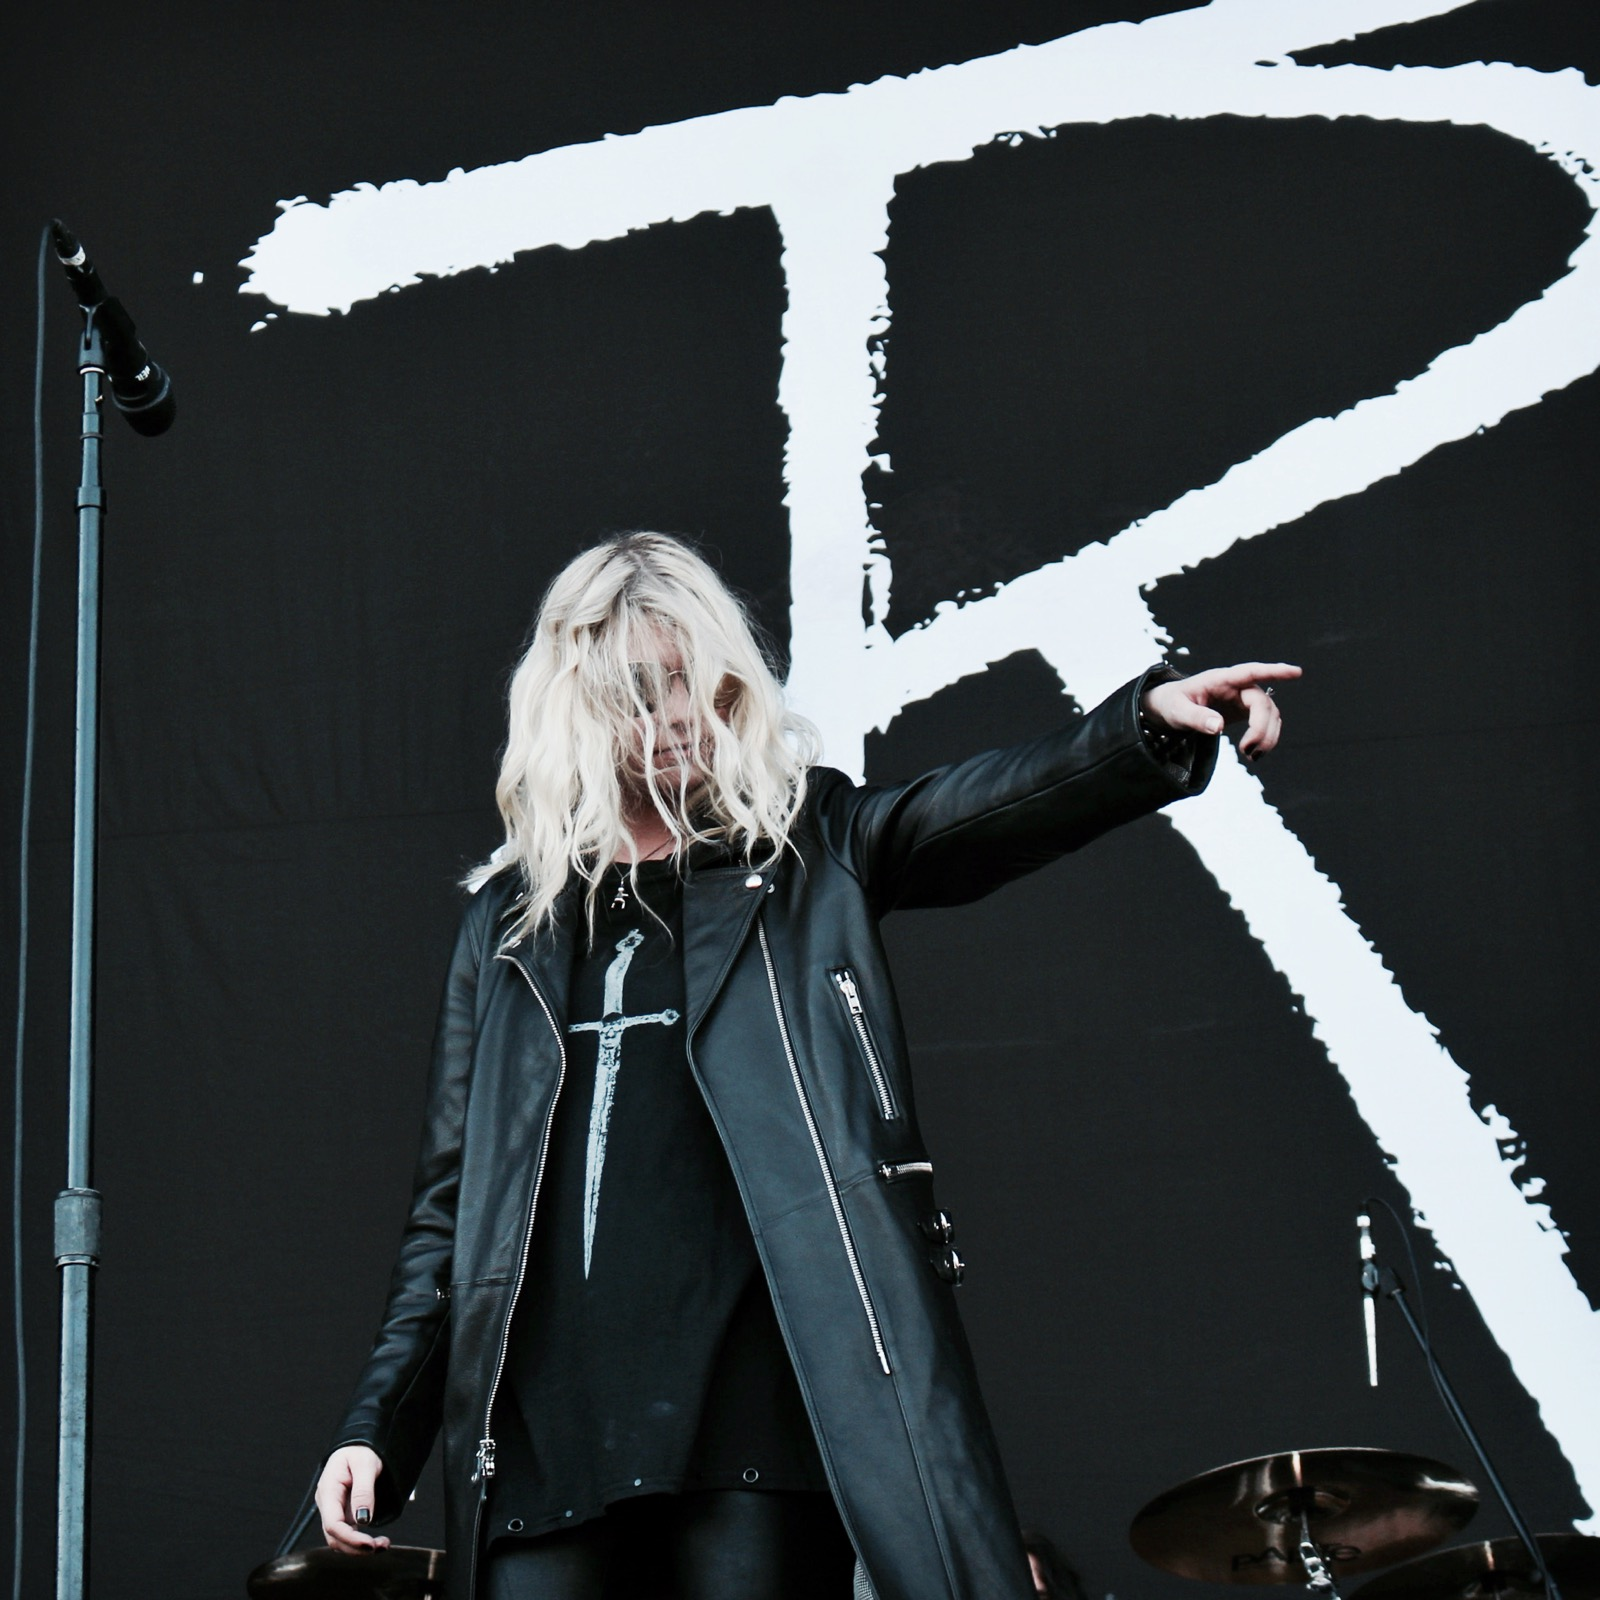 04-the-pretty-reckless-fm4-frequency-festival-2017-thexed-xedblog